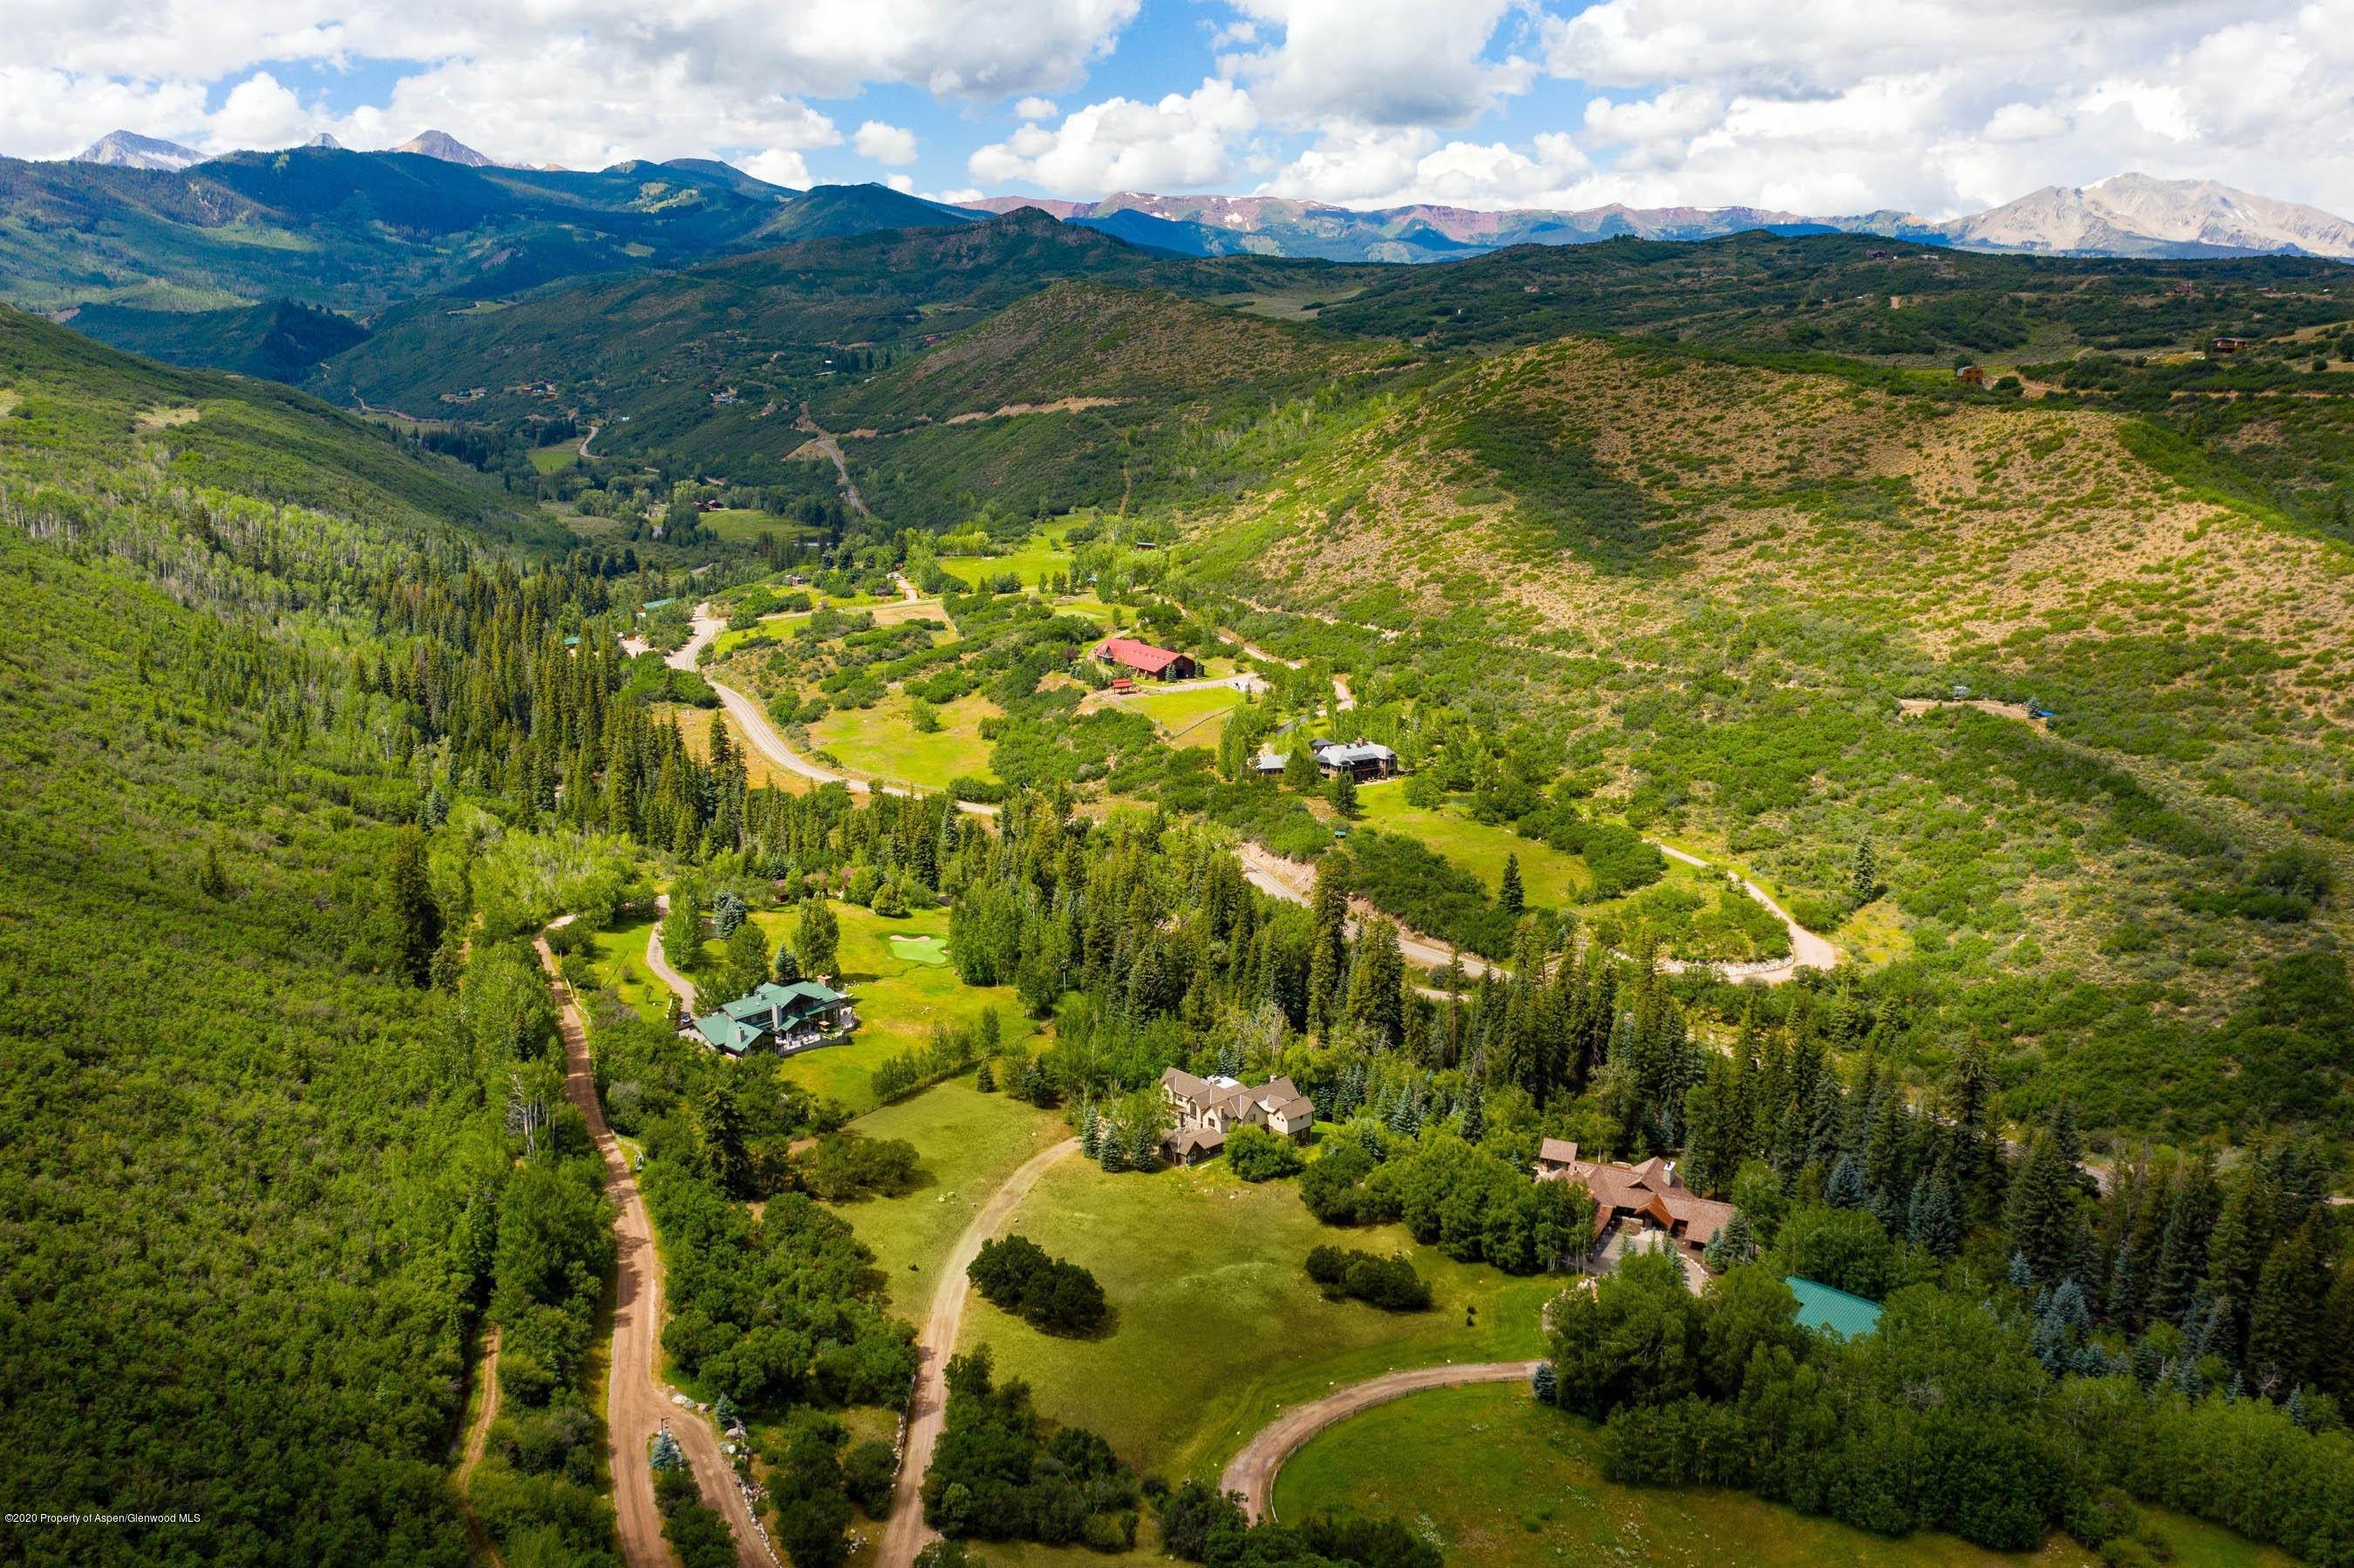 43. Single Family Home vì Bán tại 307 Whisperwind Way Snowmass, Colorado,81654 Hoa Kỳ